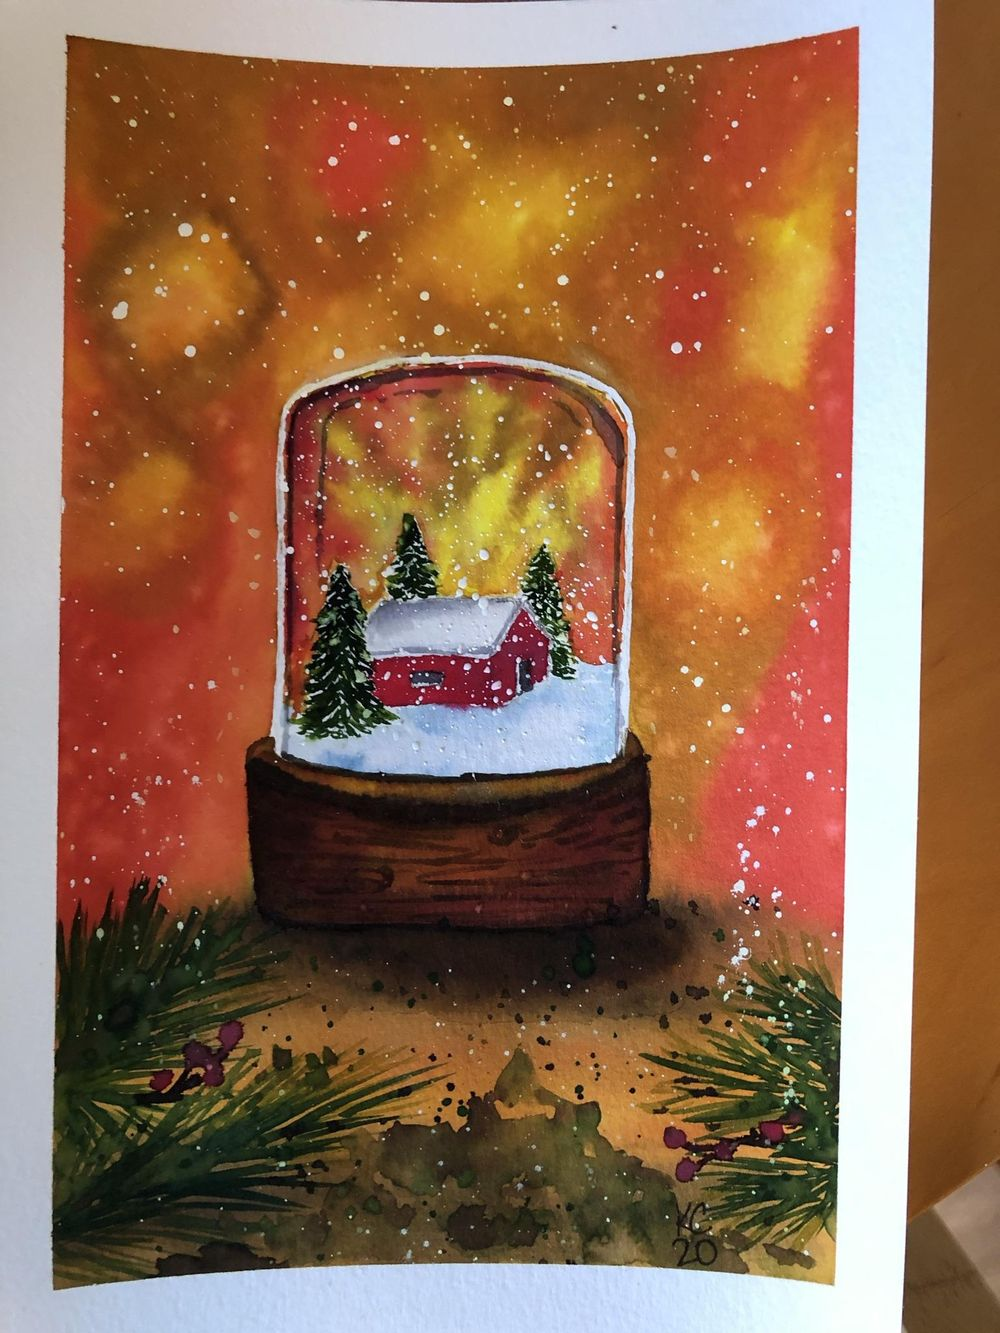 Countdown to Christmas - image 19 - student project